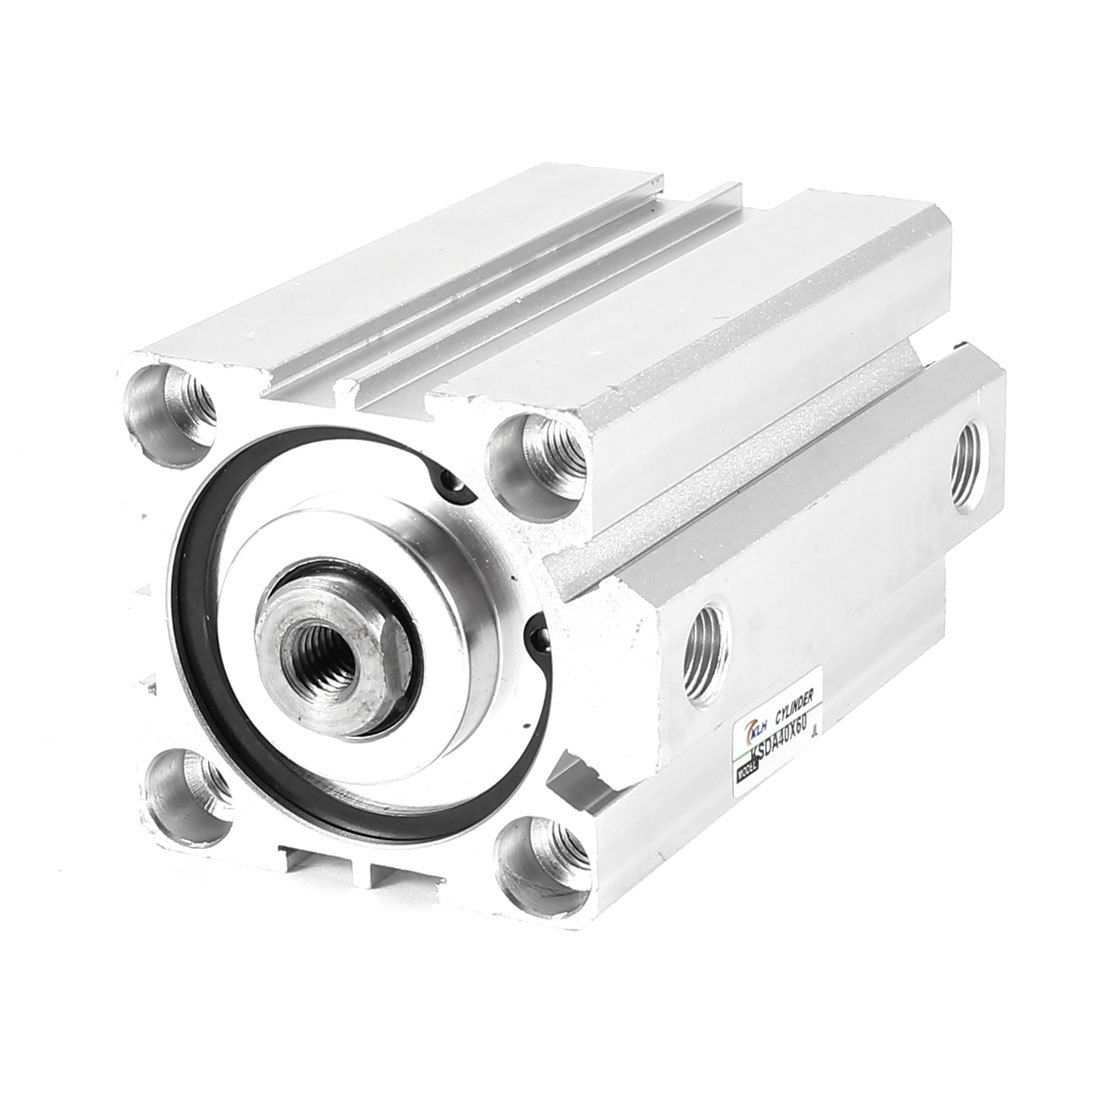 1 Pcs 50mm Bore 50mm Stroke Stainless steel Pneumatic Air Cylinder SDA50-50 new 50mm cylinder